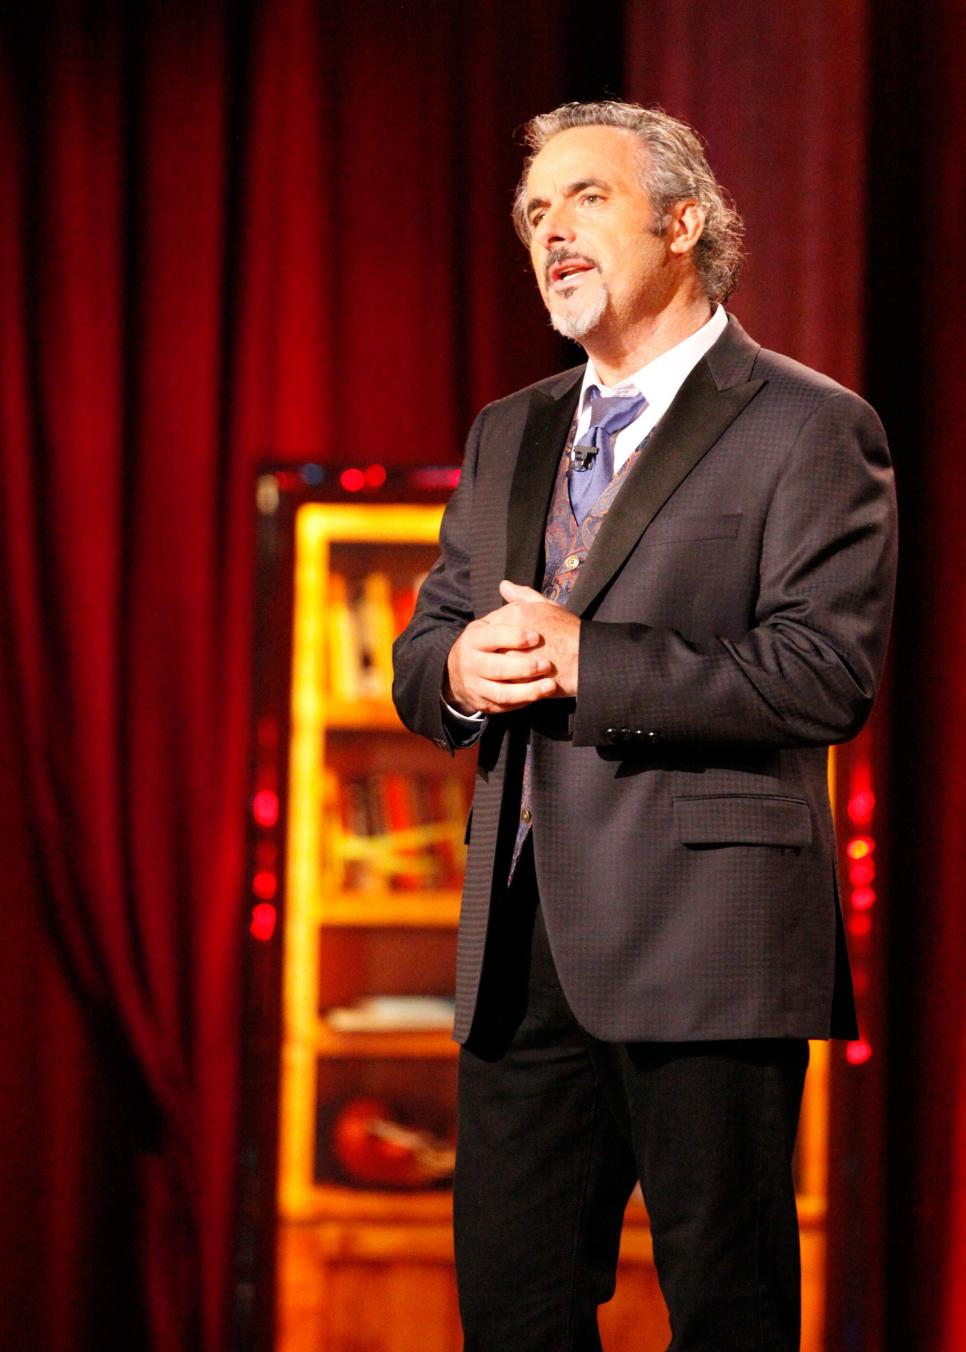 david-feherty-live-tv-show-2015-super-bowl.jpg